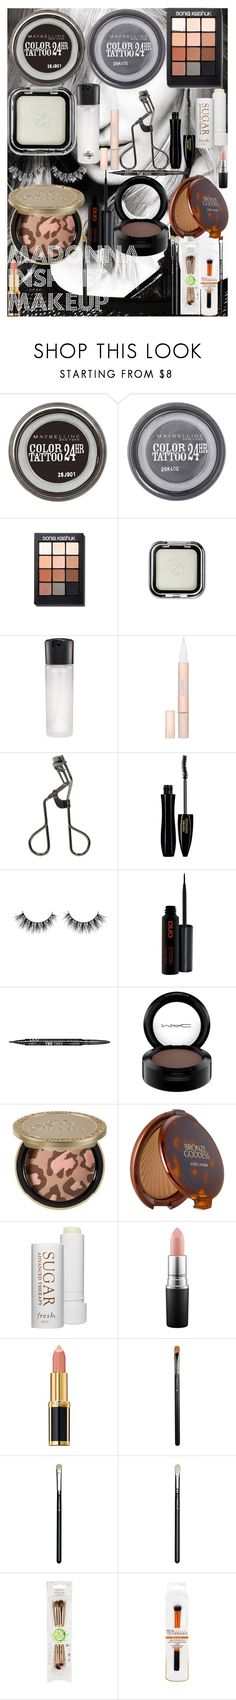 """""""Madonna Inspired Makeup"""" by oroartye-1 on Polyvore featuring beauty, Maybelline, Sonia Kashuk, MAC Cosmetics, L'Oréal Paris, Tweezerman, Lancôme, NYX, Too Faced Cosmetics and Estée Lauder"""